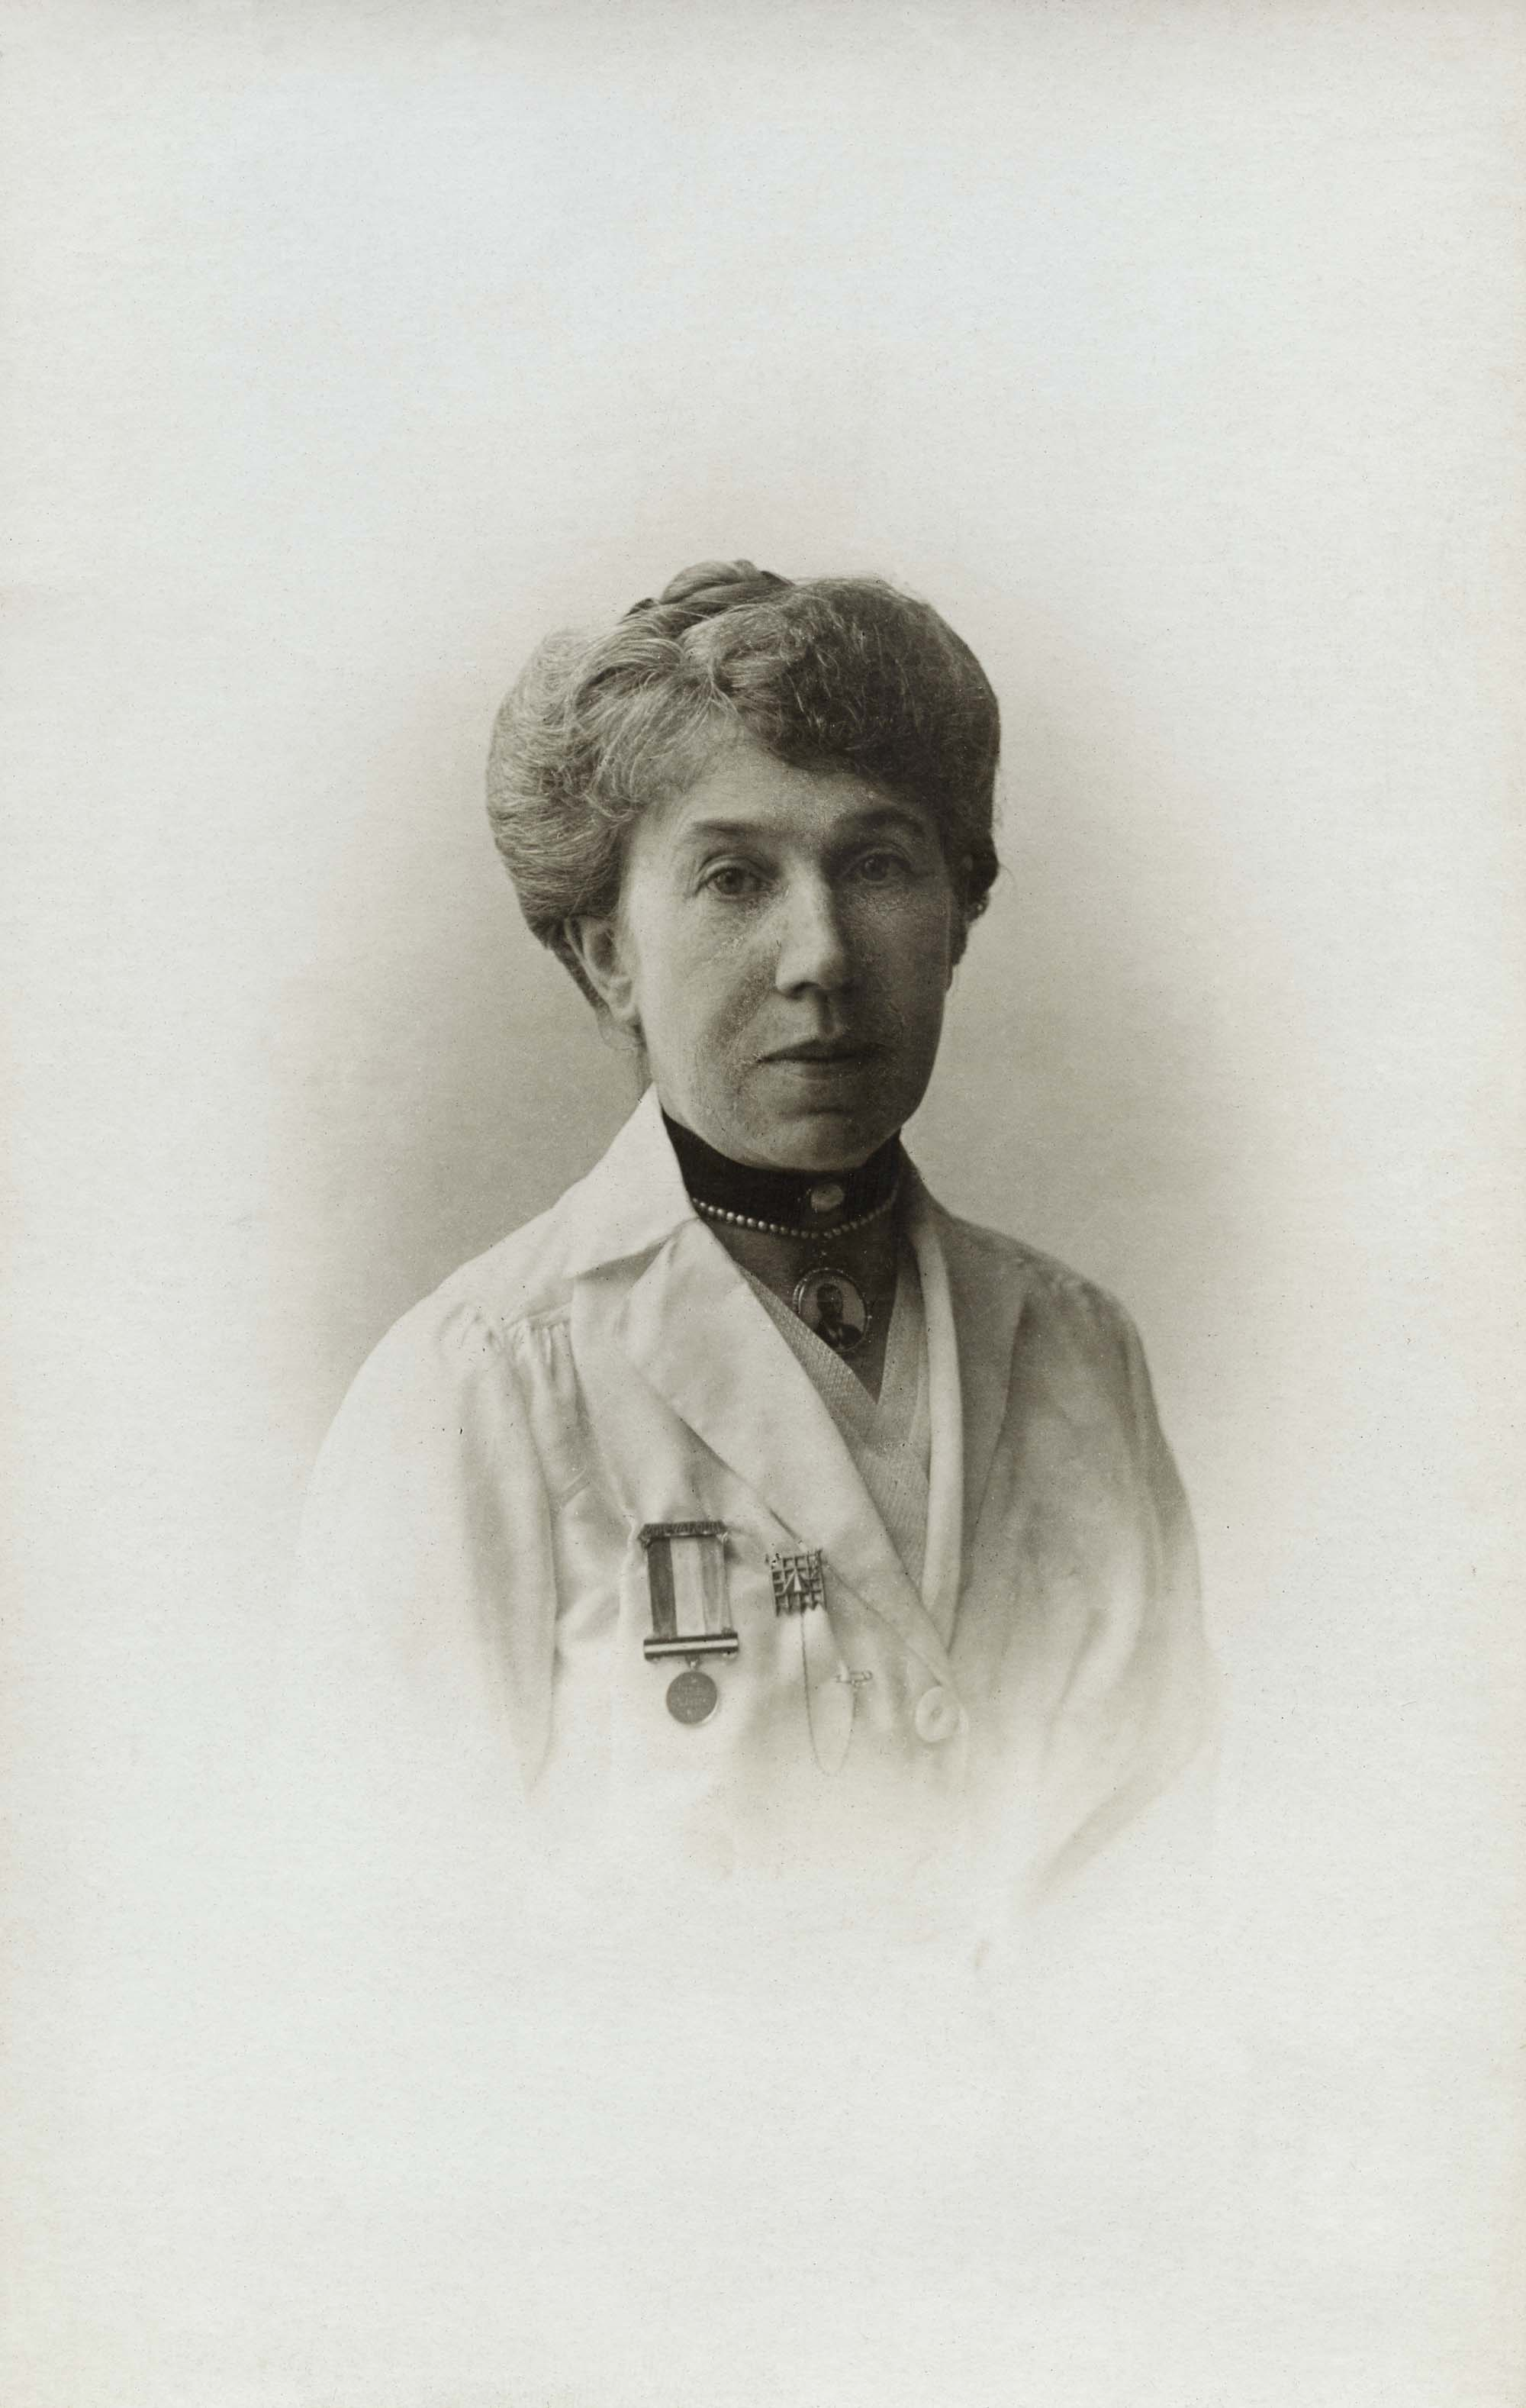 a portriat photographic postcard of a woman wearing a medal